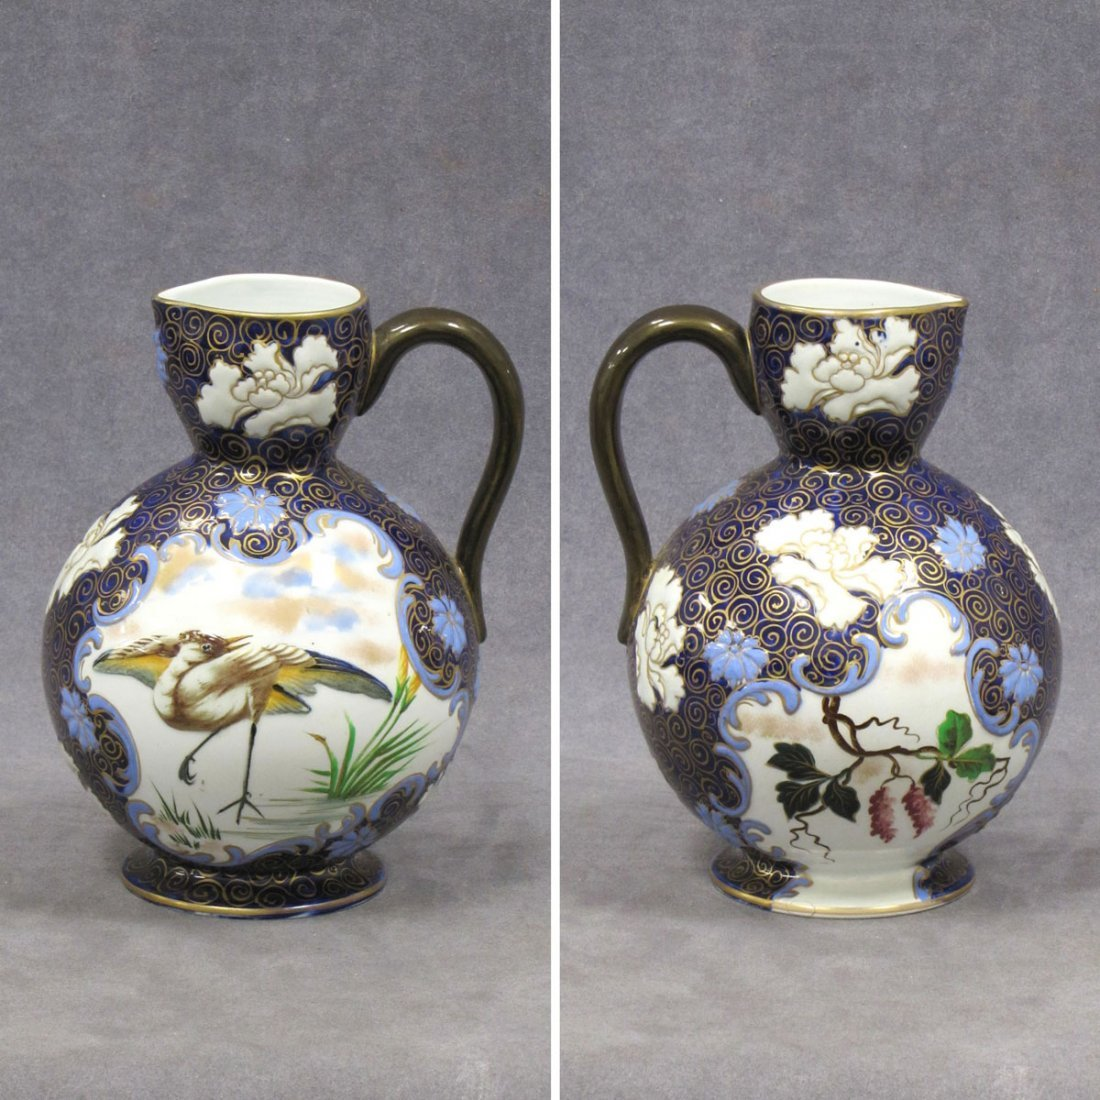 RUSSIAN GILT DECORATED AND ENAMELED COBALT POTTERY